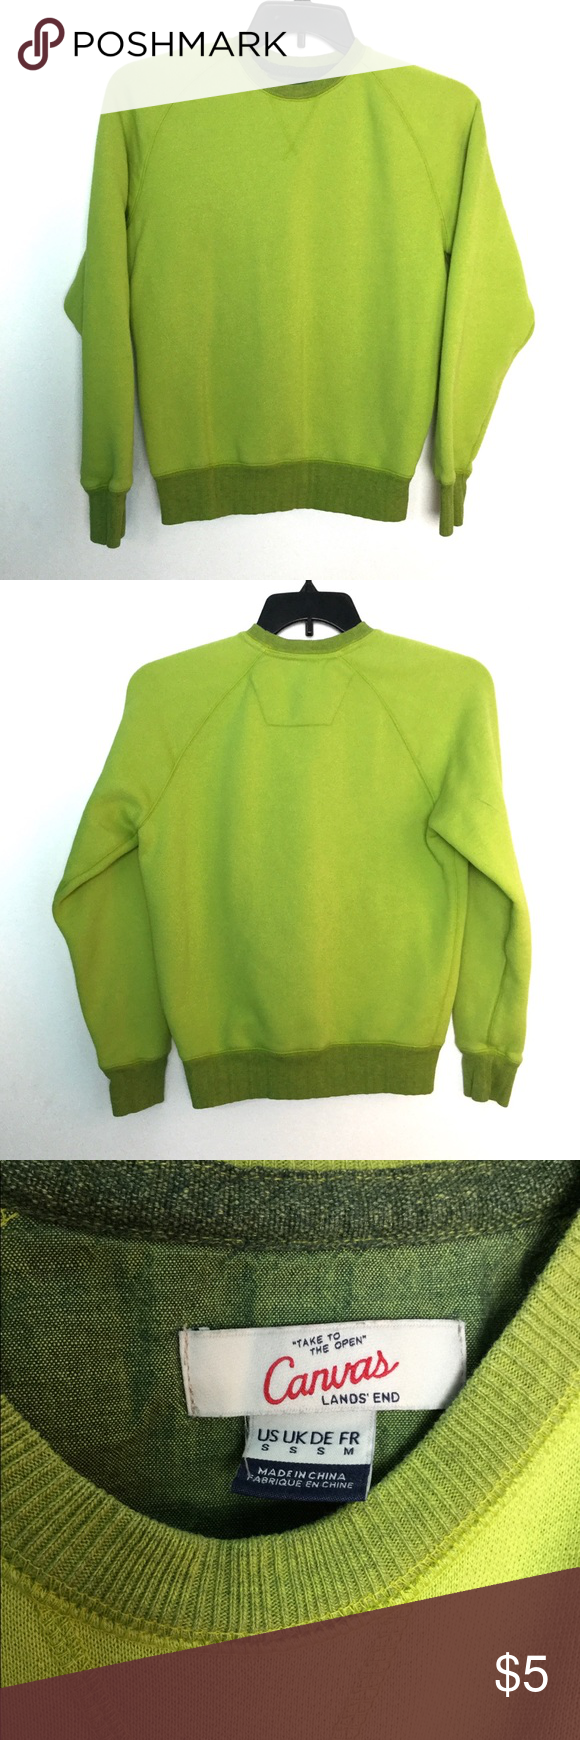 Lands End S Sweatshirt Lime Canvas Sweats Guc Guc Good Used Condition No Visible Holes Or Fabric Distress Perfect Sweatshirts Clothes Design Sweatshirt Tops [ 1740 x 580 Pixel ]